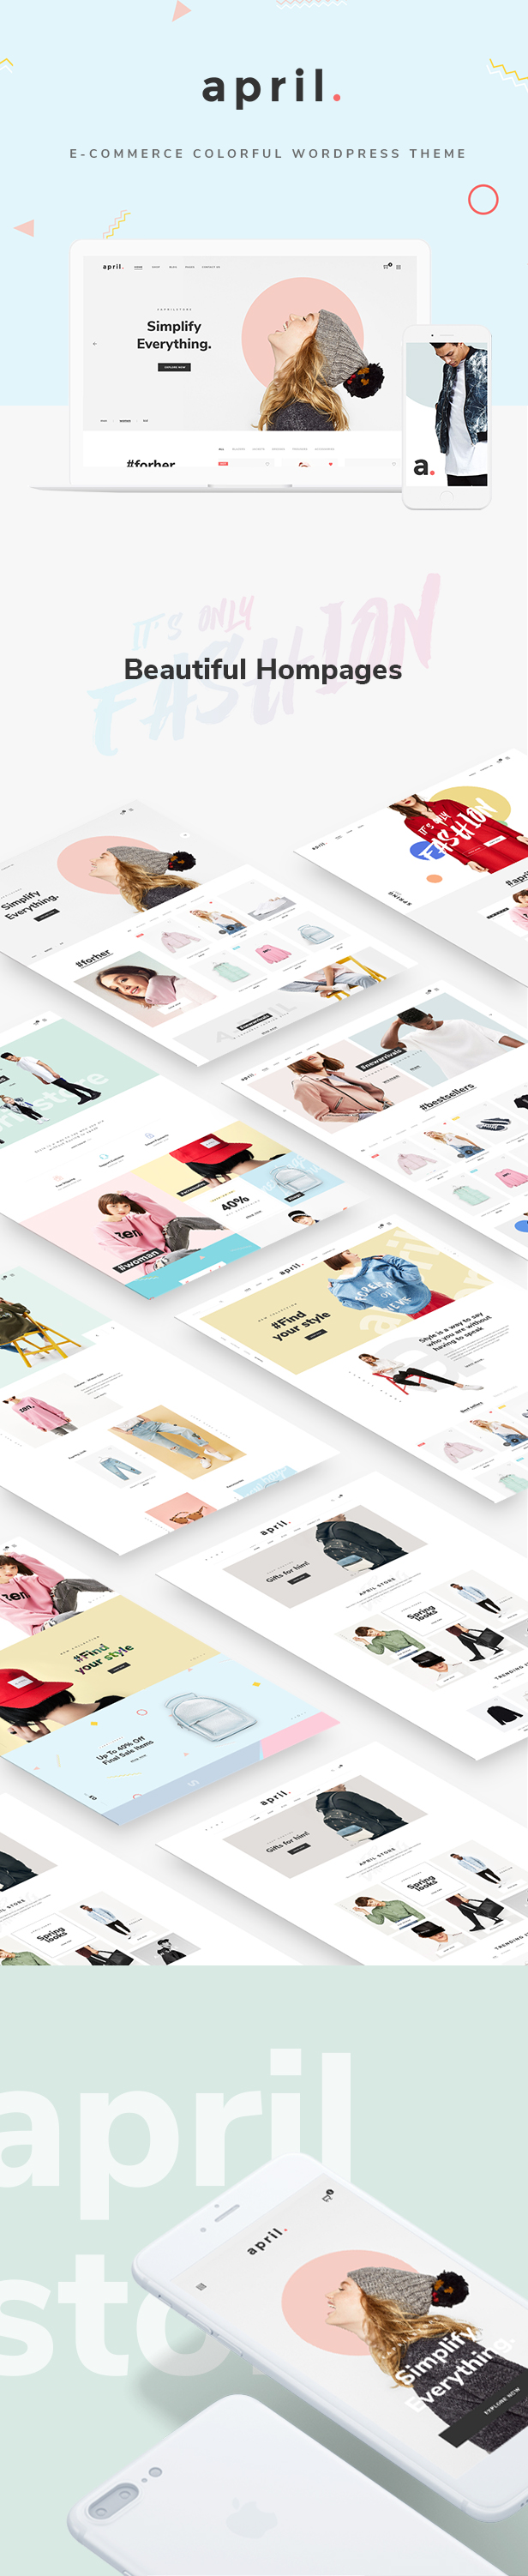 APRIL - Fashion WooCommerce WordPress Theme - 23